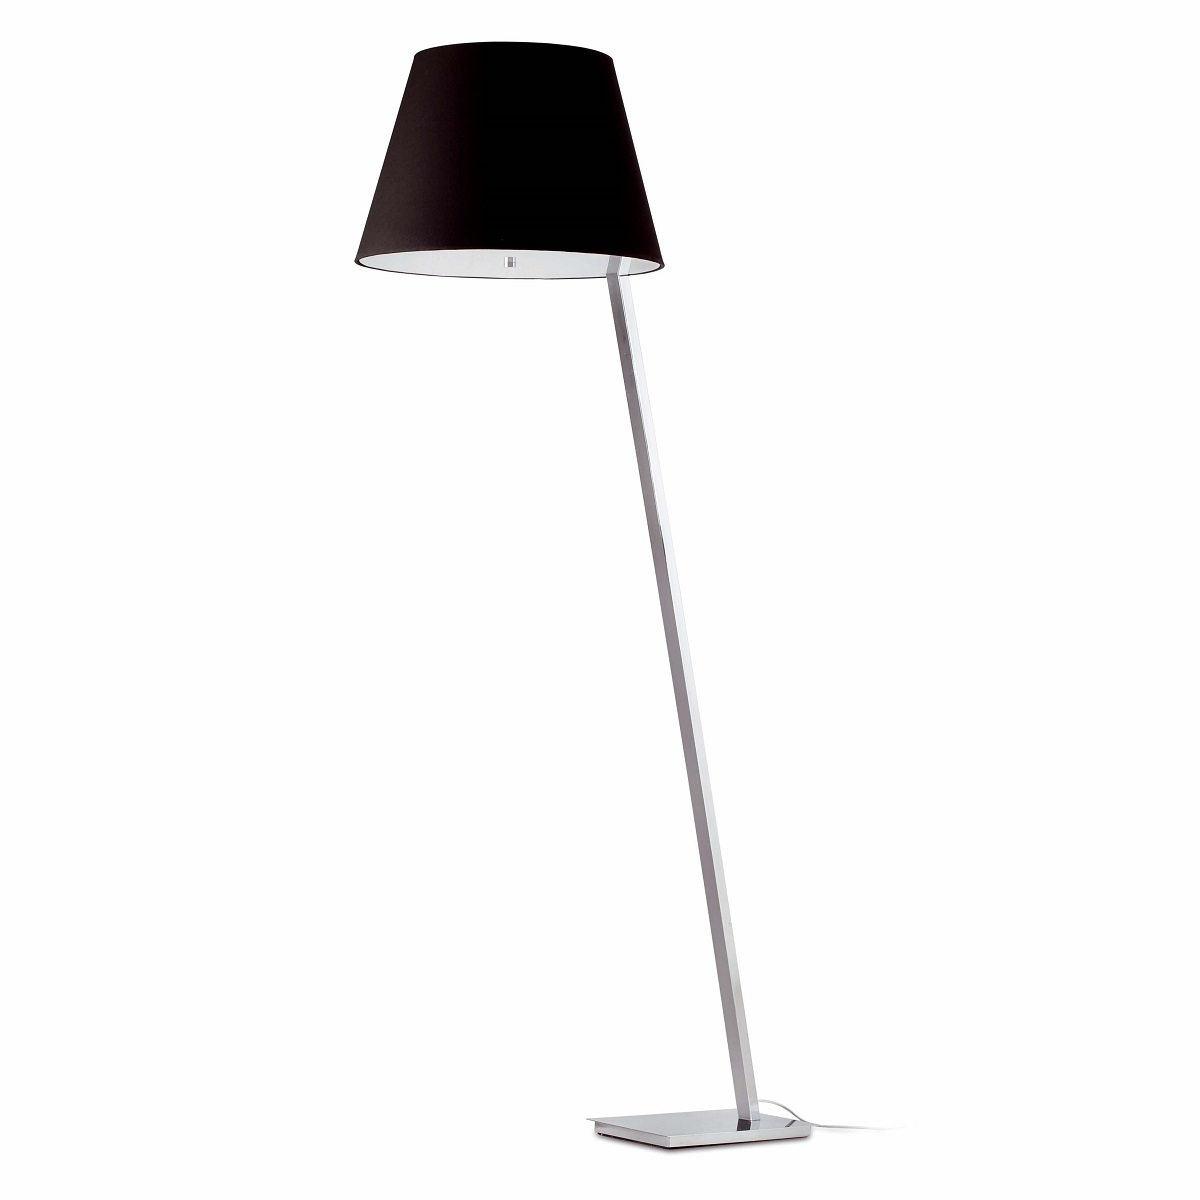 Lampadaire design int rieur moma faro noir for Lampadaire interieur design